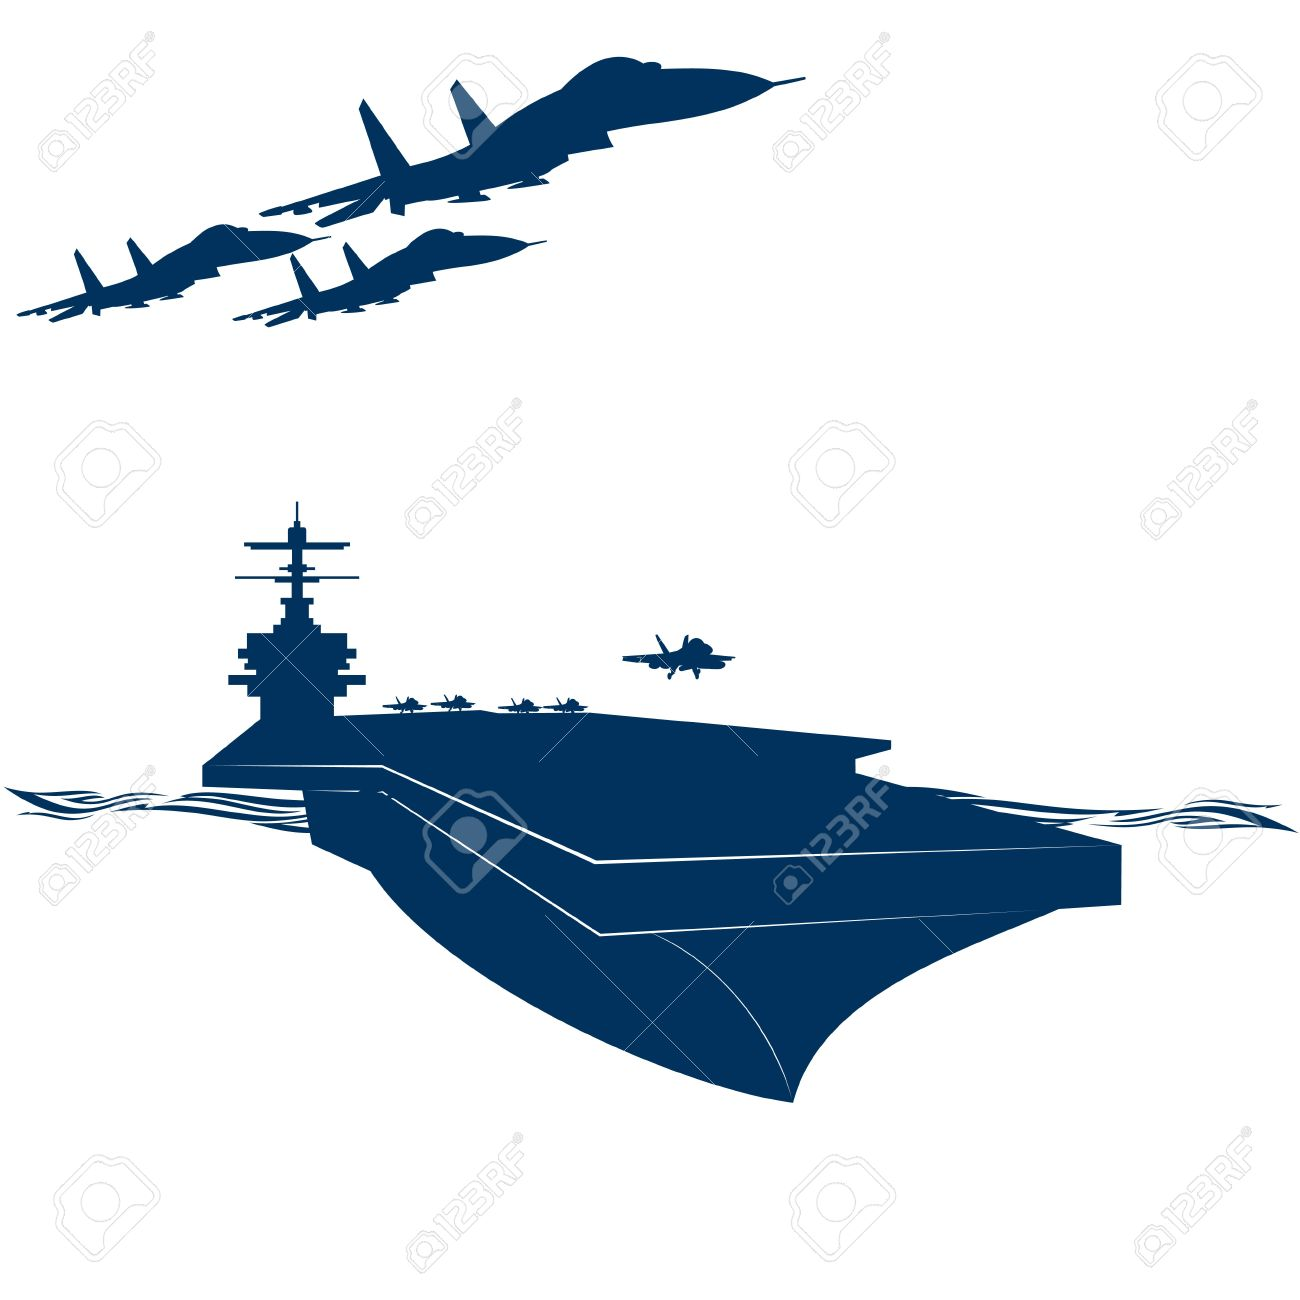 Military Aircraft Carrier Clip Art.